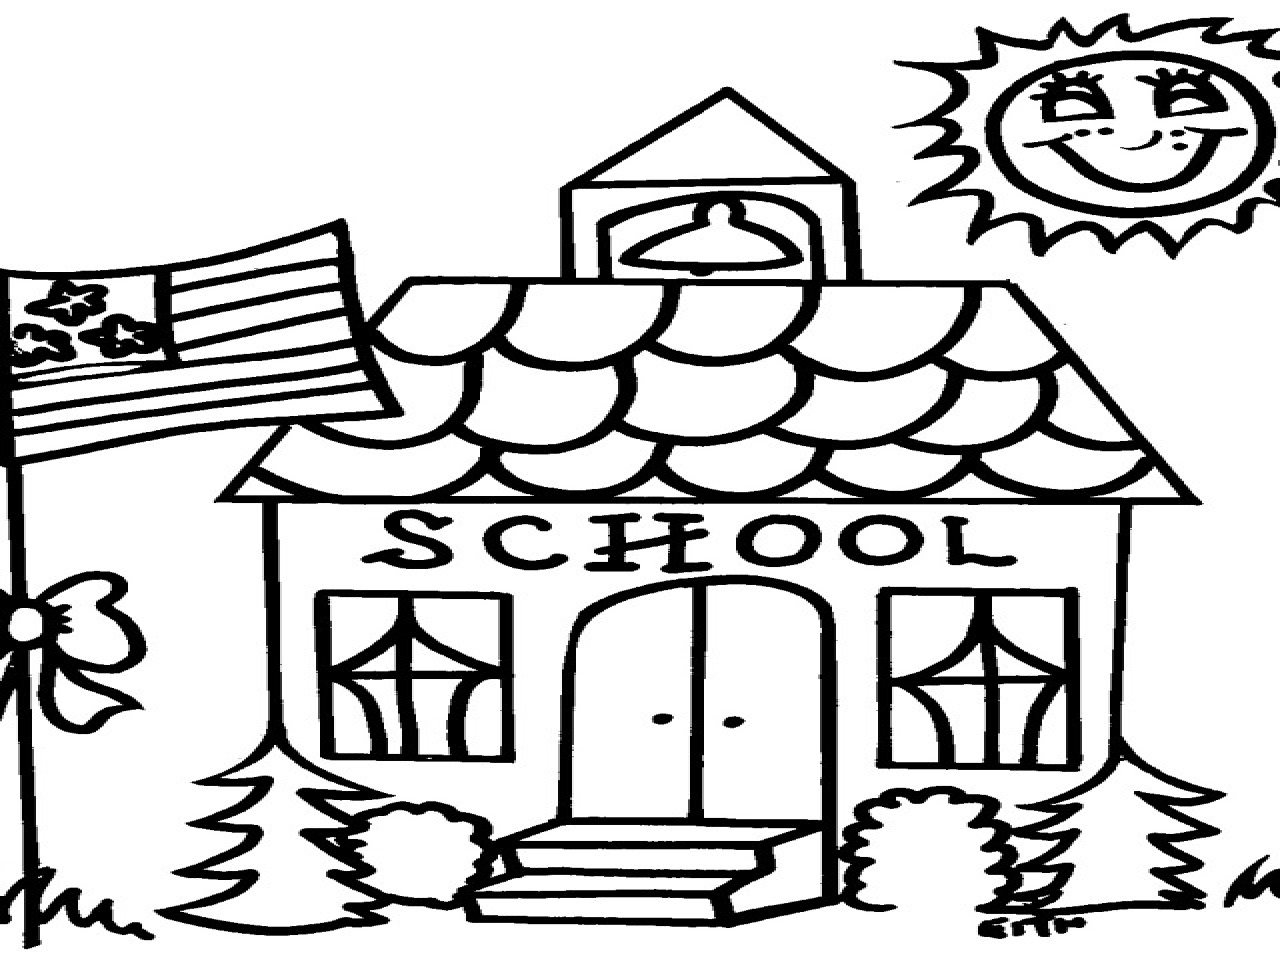 Schoolhouse Coloring Pages Printables School House Page Grig3 Gallery Of Coloring Pages School House Coloring Pages Wallpaper Download